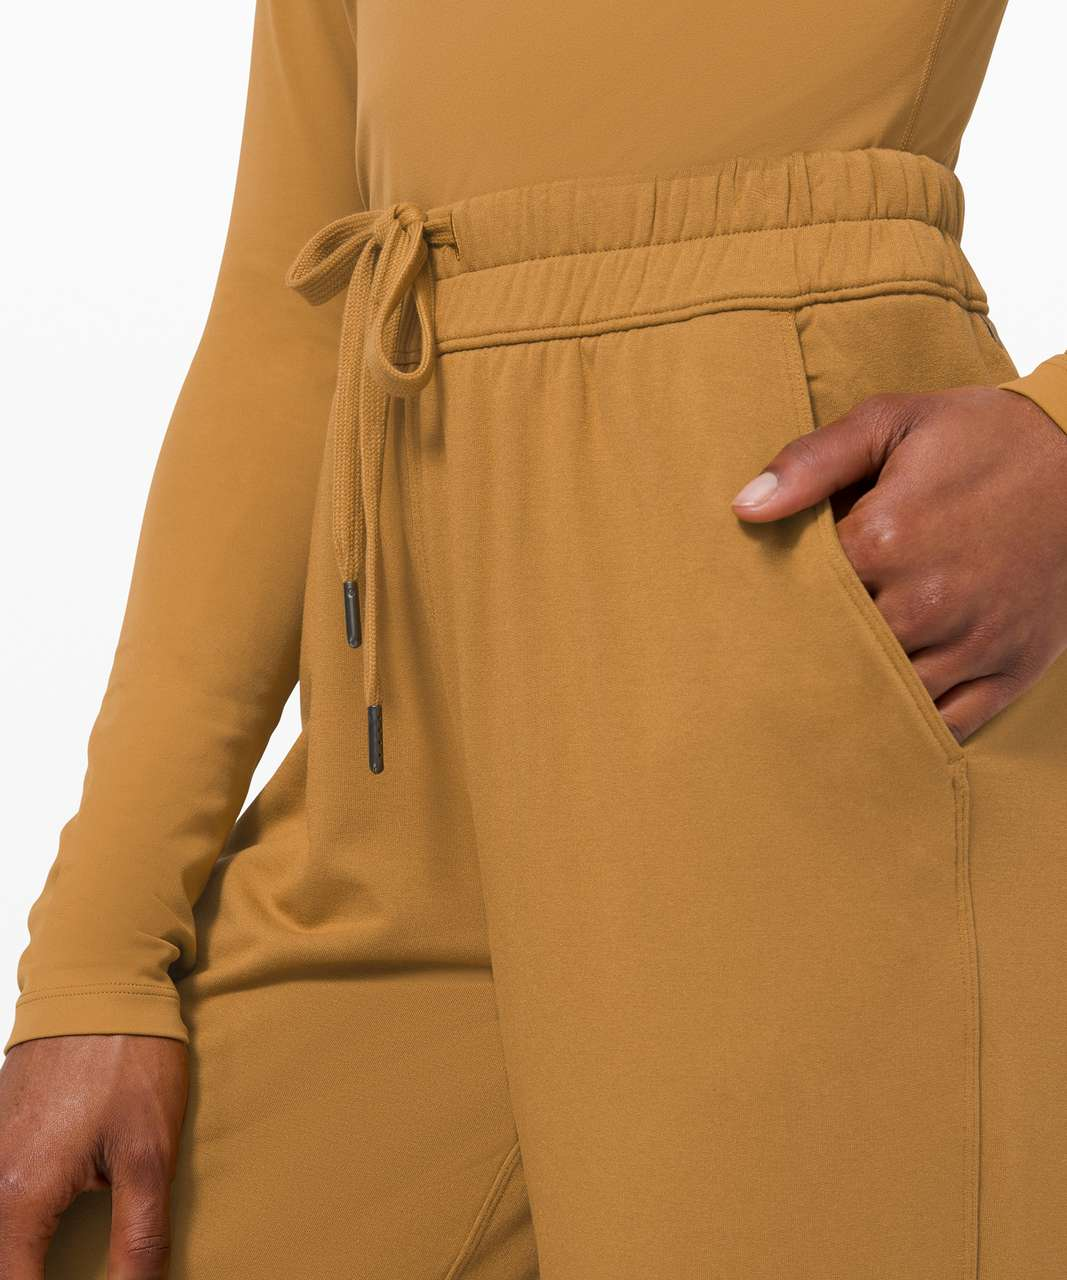 Lululemon Bound to Bliss High-Rise 7/8 Pant - Spiced Bronze